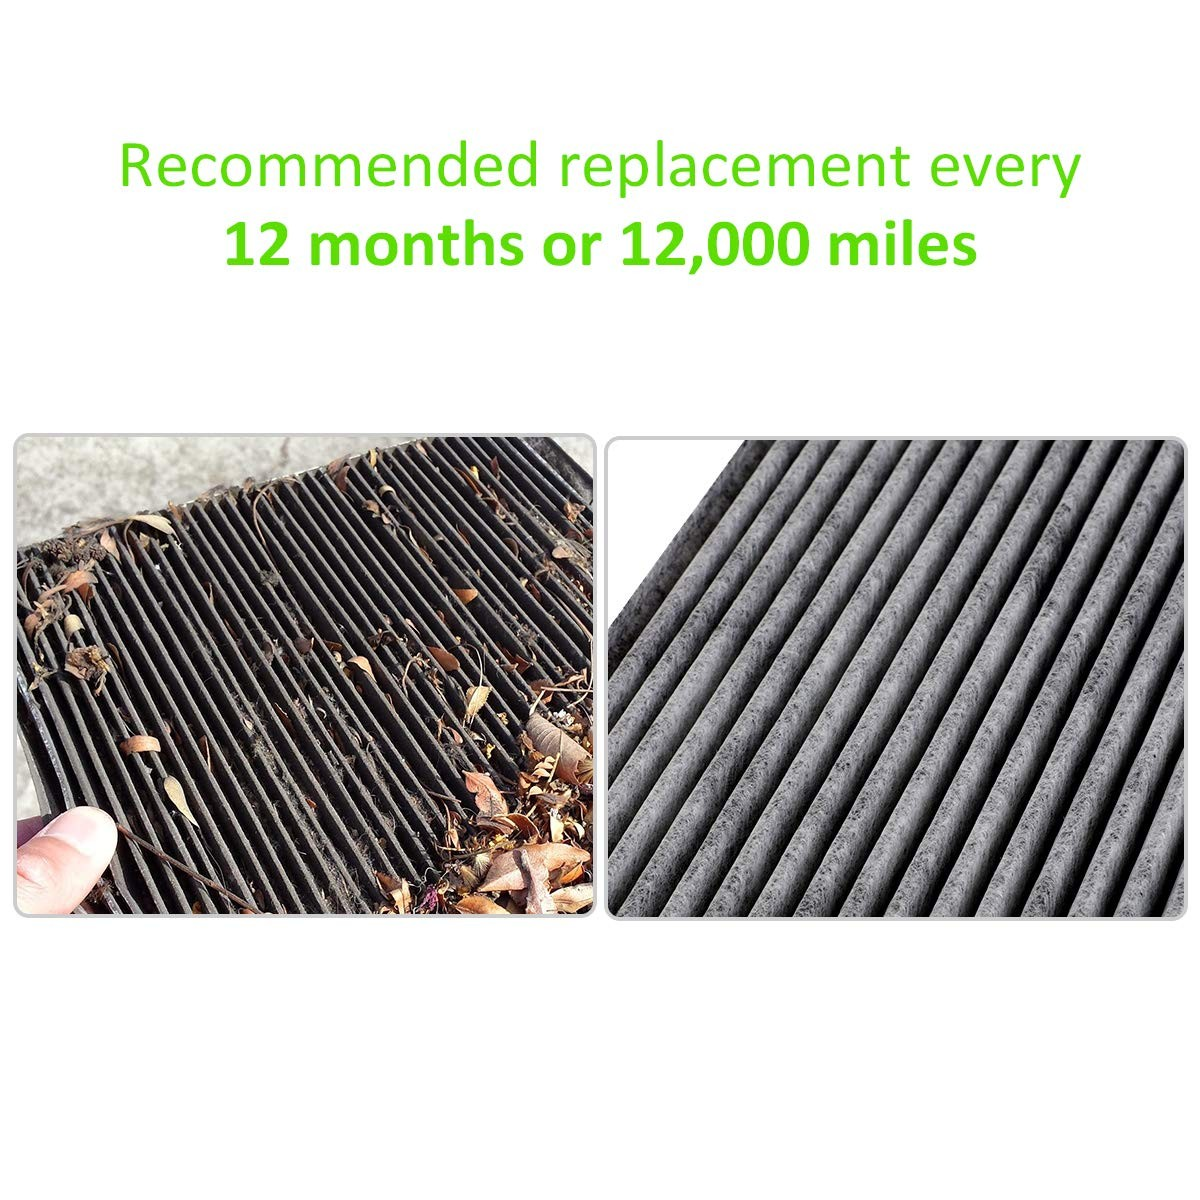 2 Pack Cabin Air Filter for Honda Accord,Odyssey,Civic,CR-V,Pilot,Acura,Replace 80292-t0g-a01 2 Pack